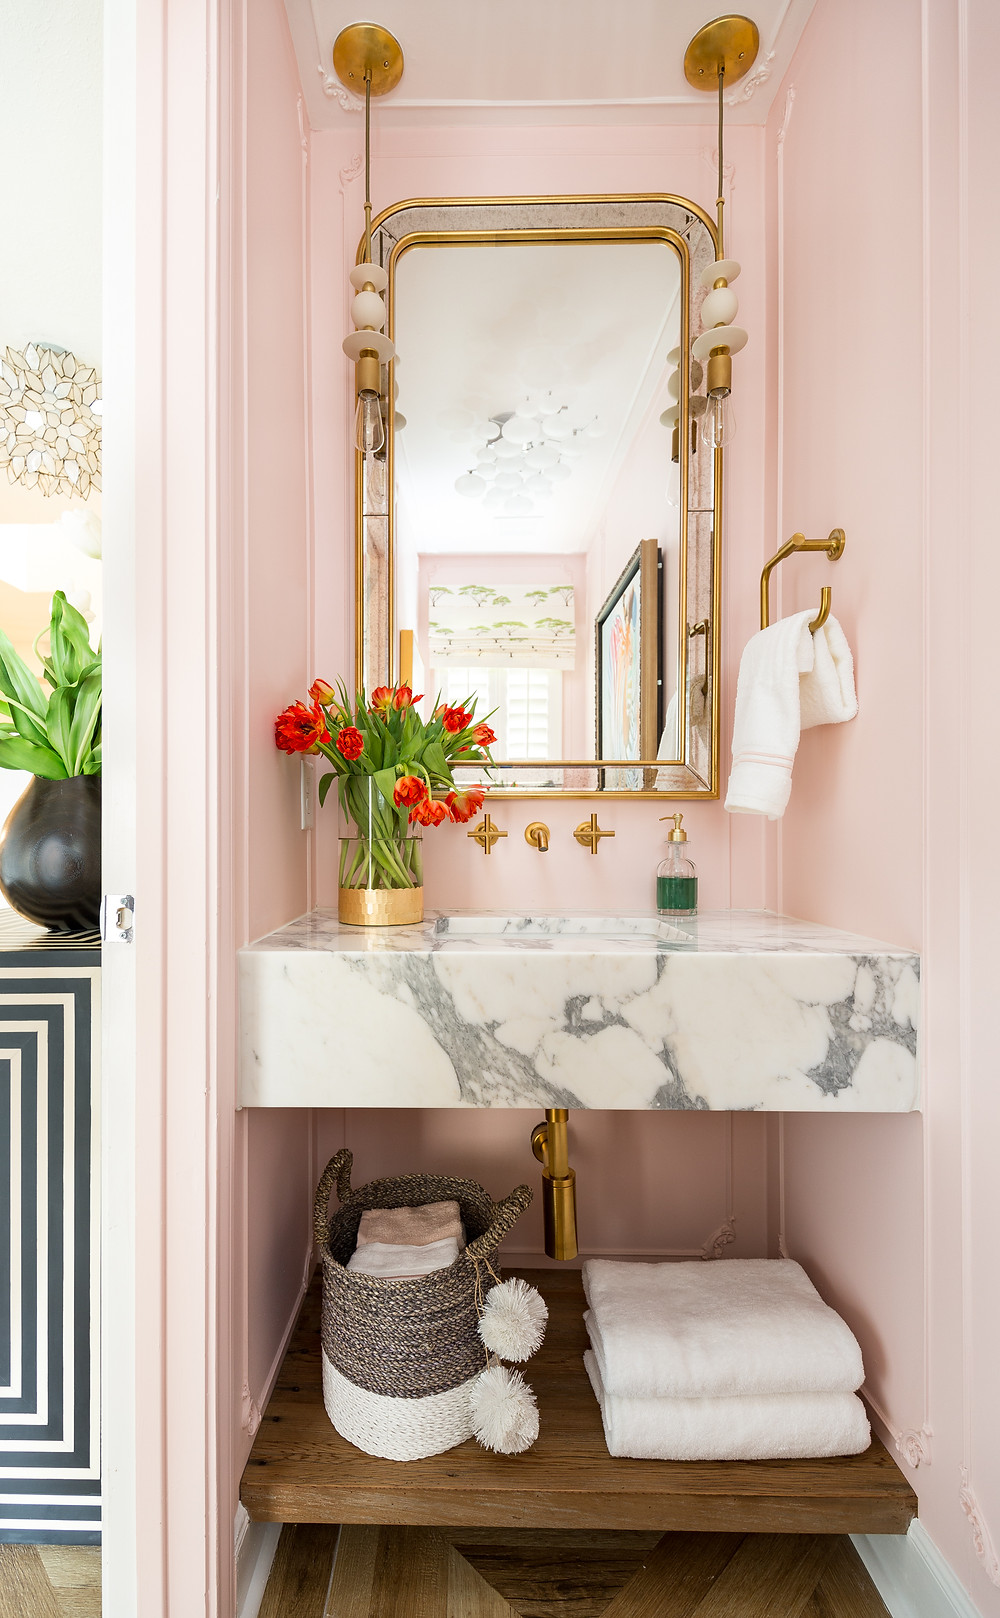 Powder room with blush walls